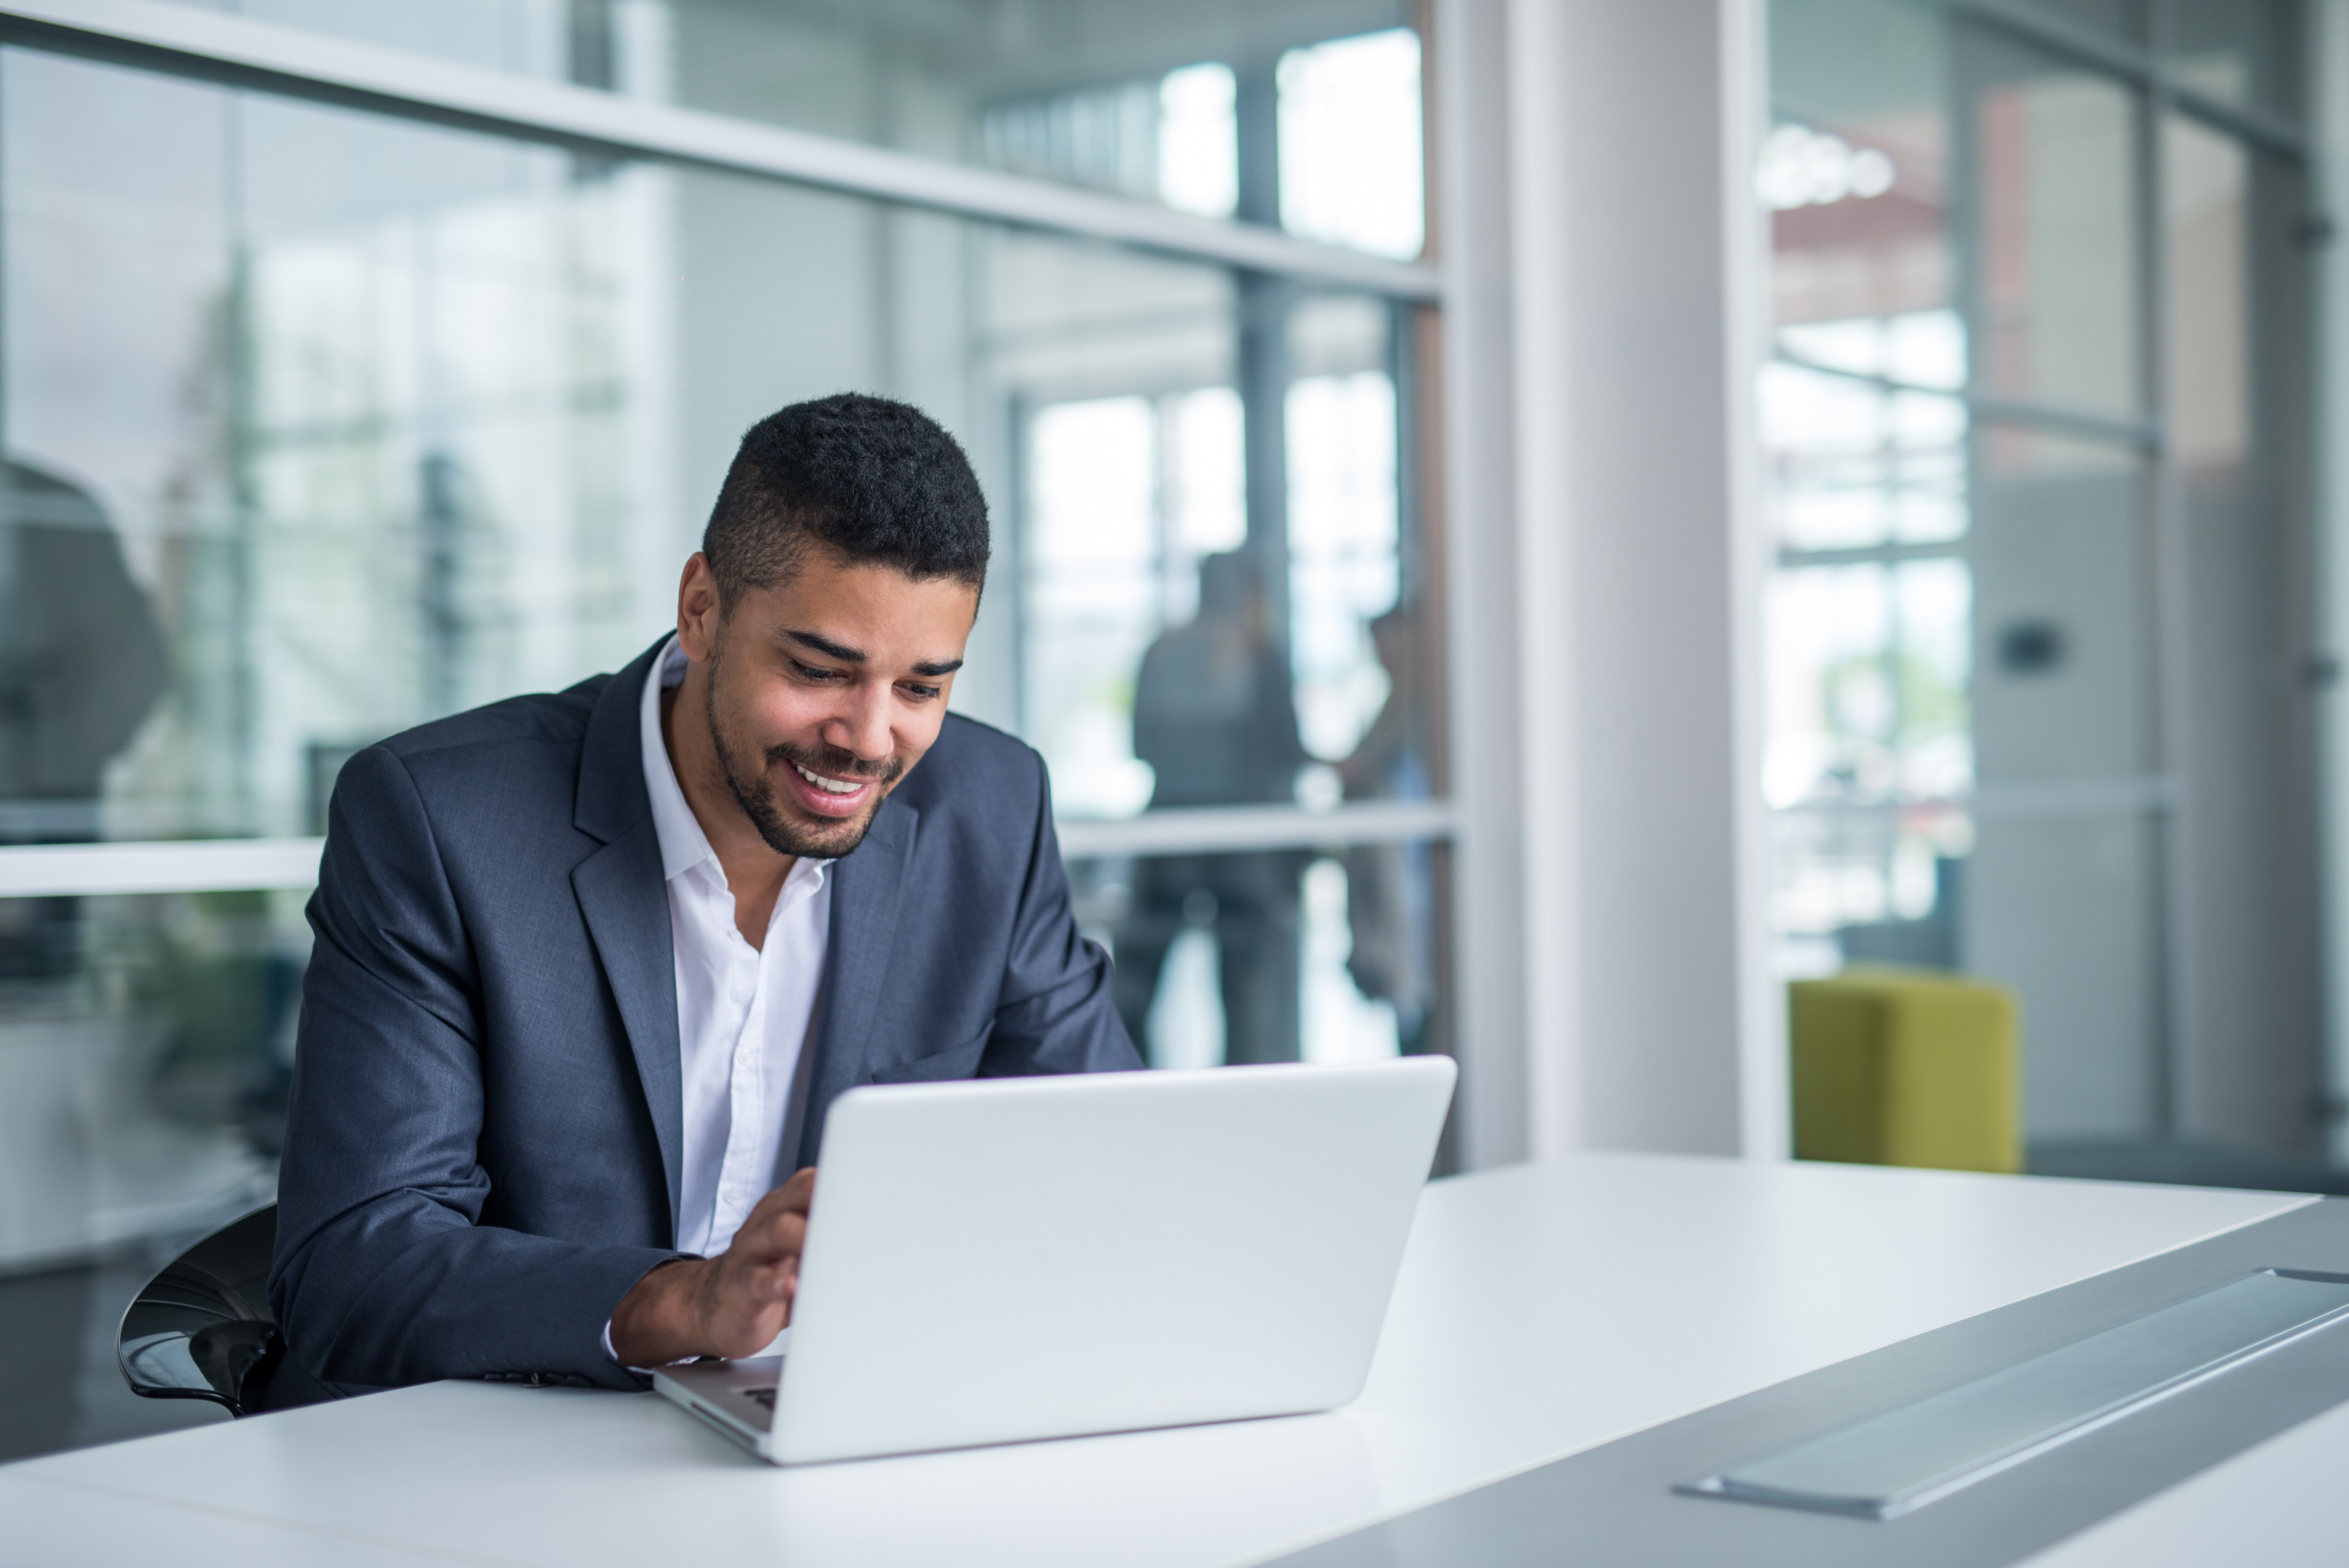 Young businessman uses laptop computer at work desk